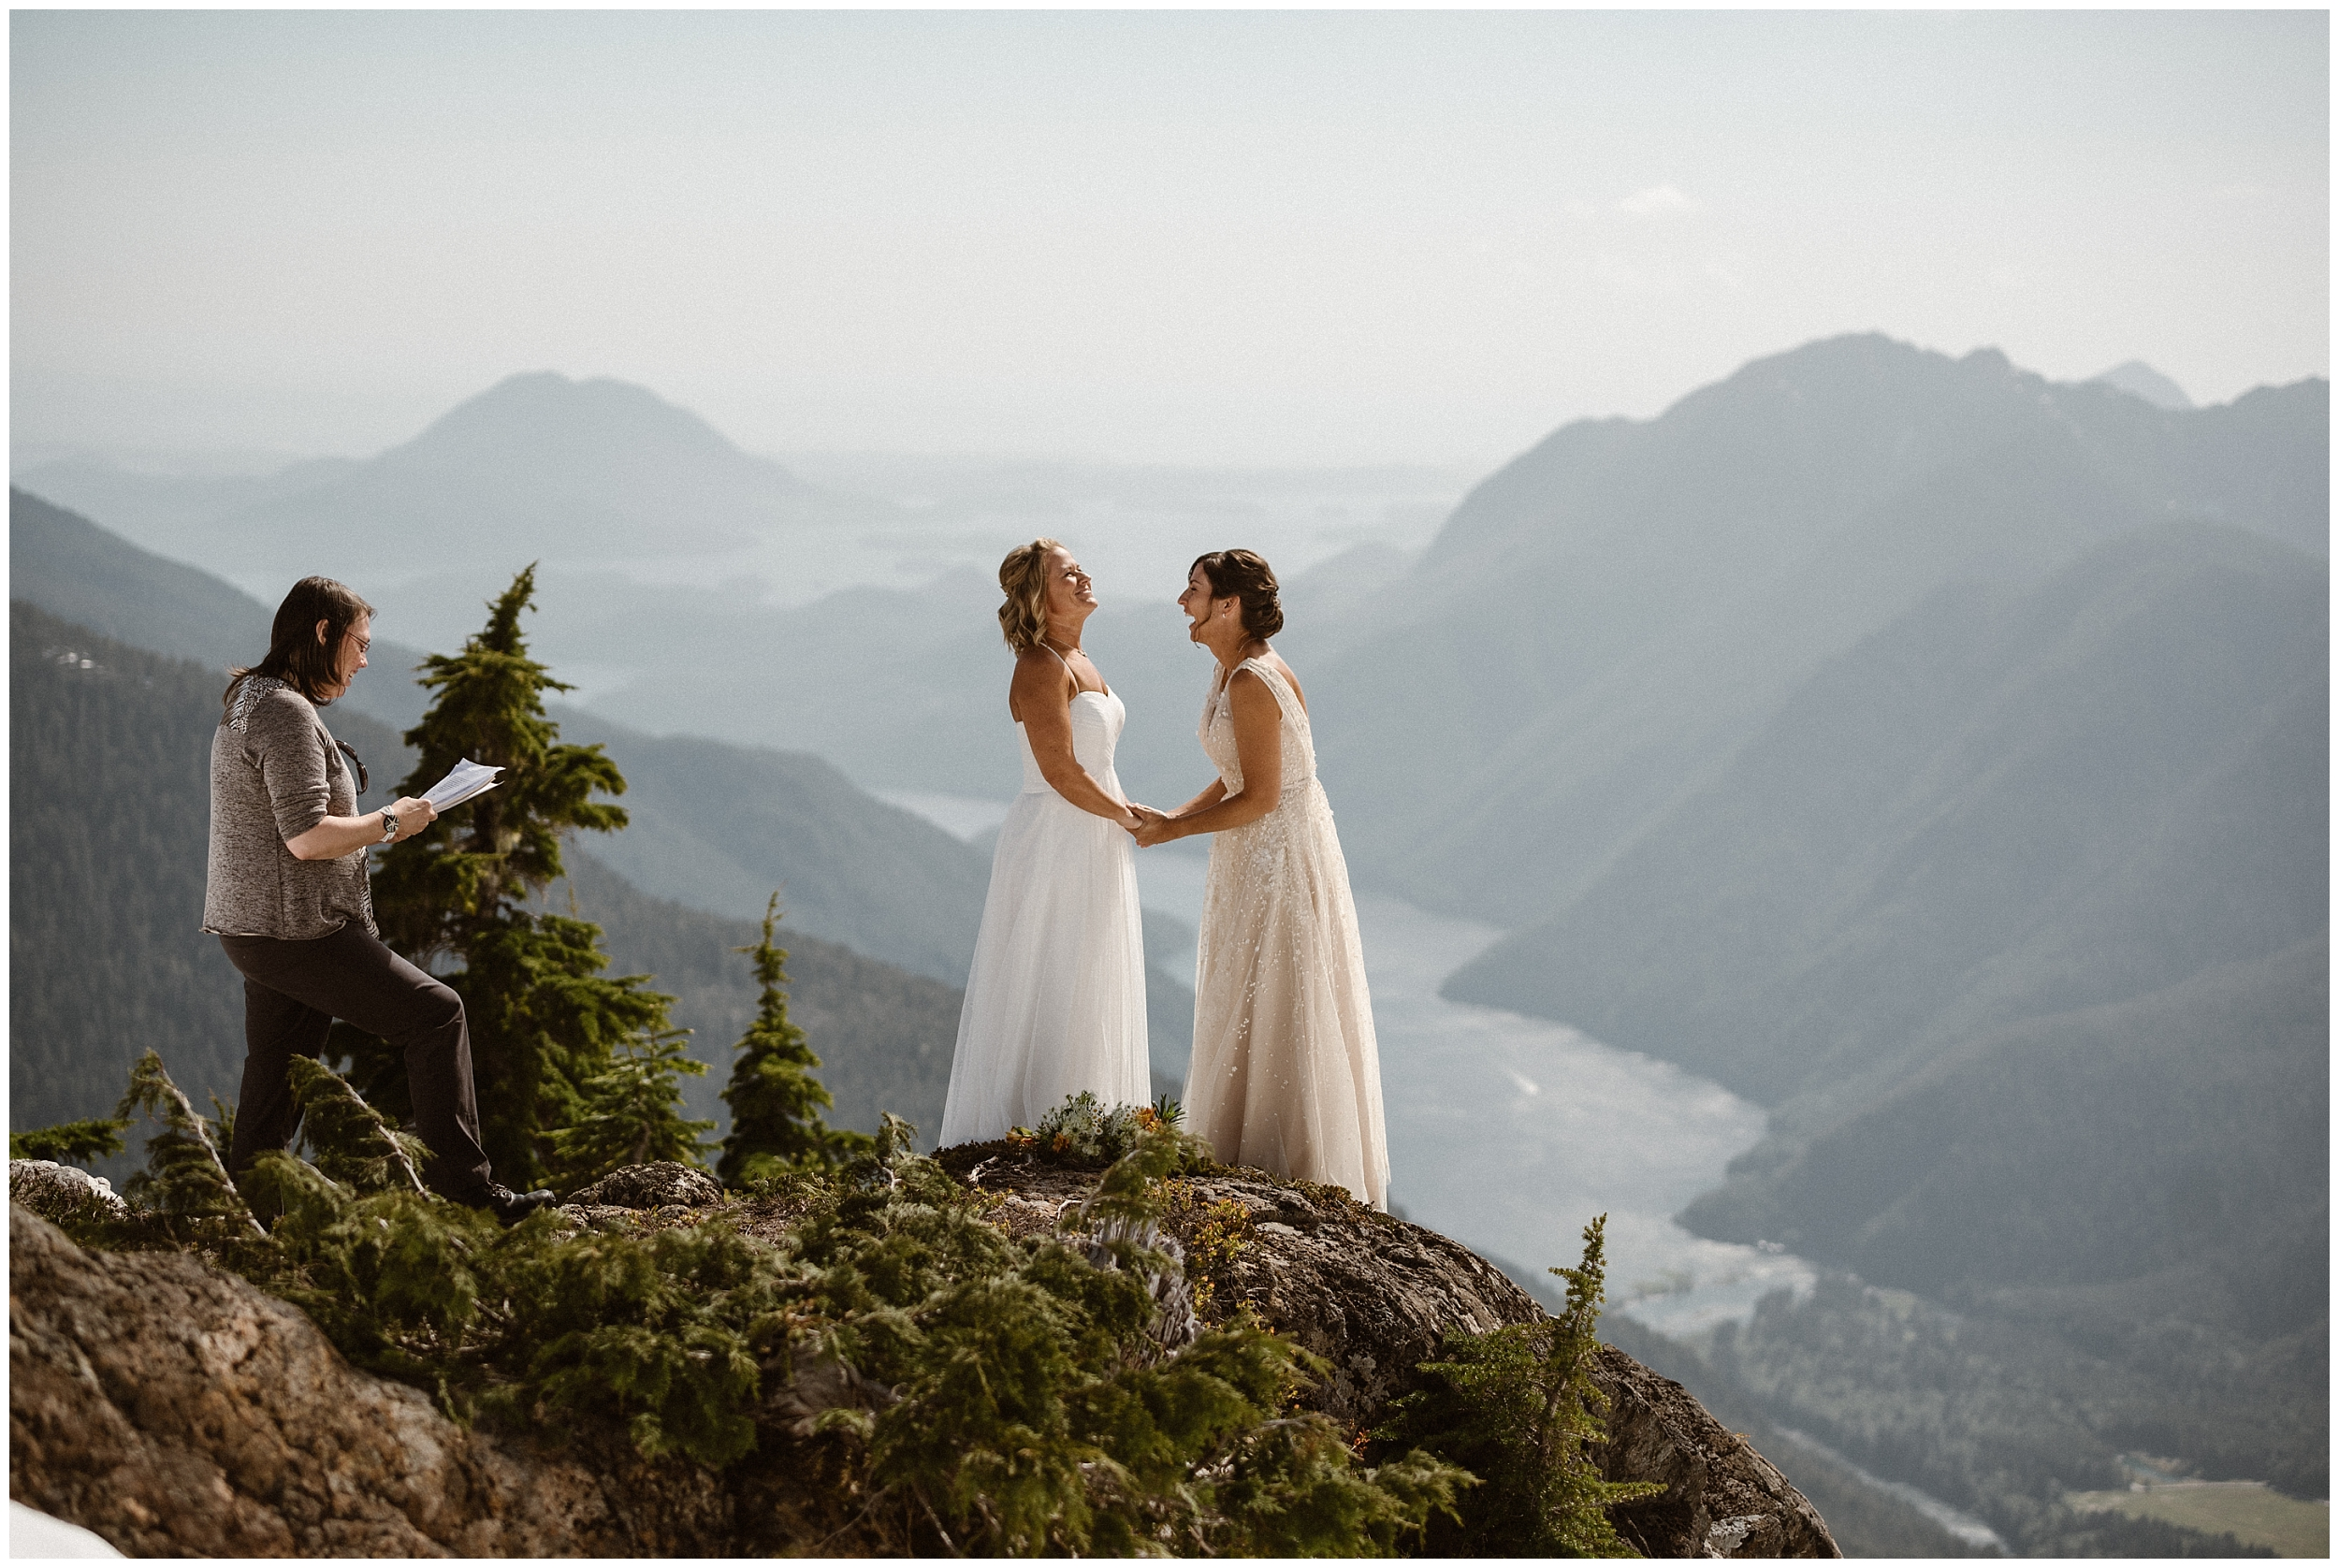 Two brides take hands a top a mountain peak, laughing as they run through their wedding ceremony outline. An officiant reads their unique wedding ceremony script on the mountain peak as well. In the background of these elopement pictures, more mountain ranges, lush foliage, and a river can be seen.